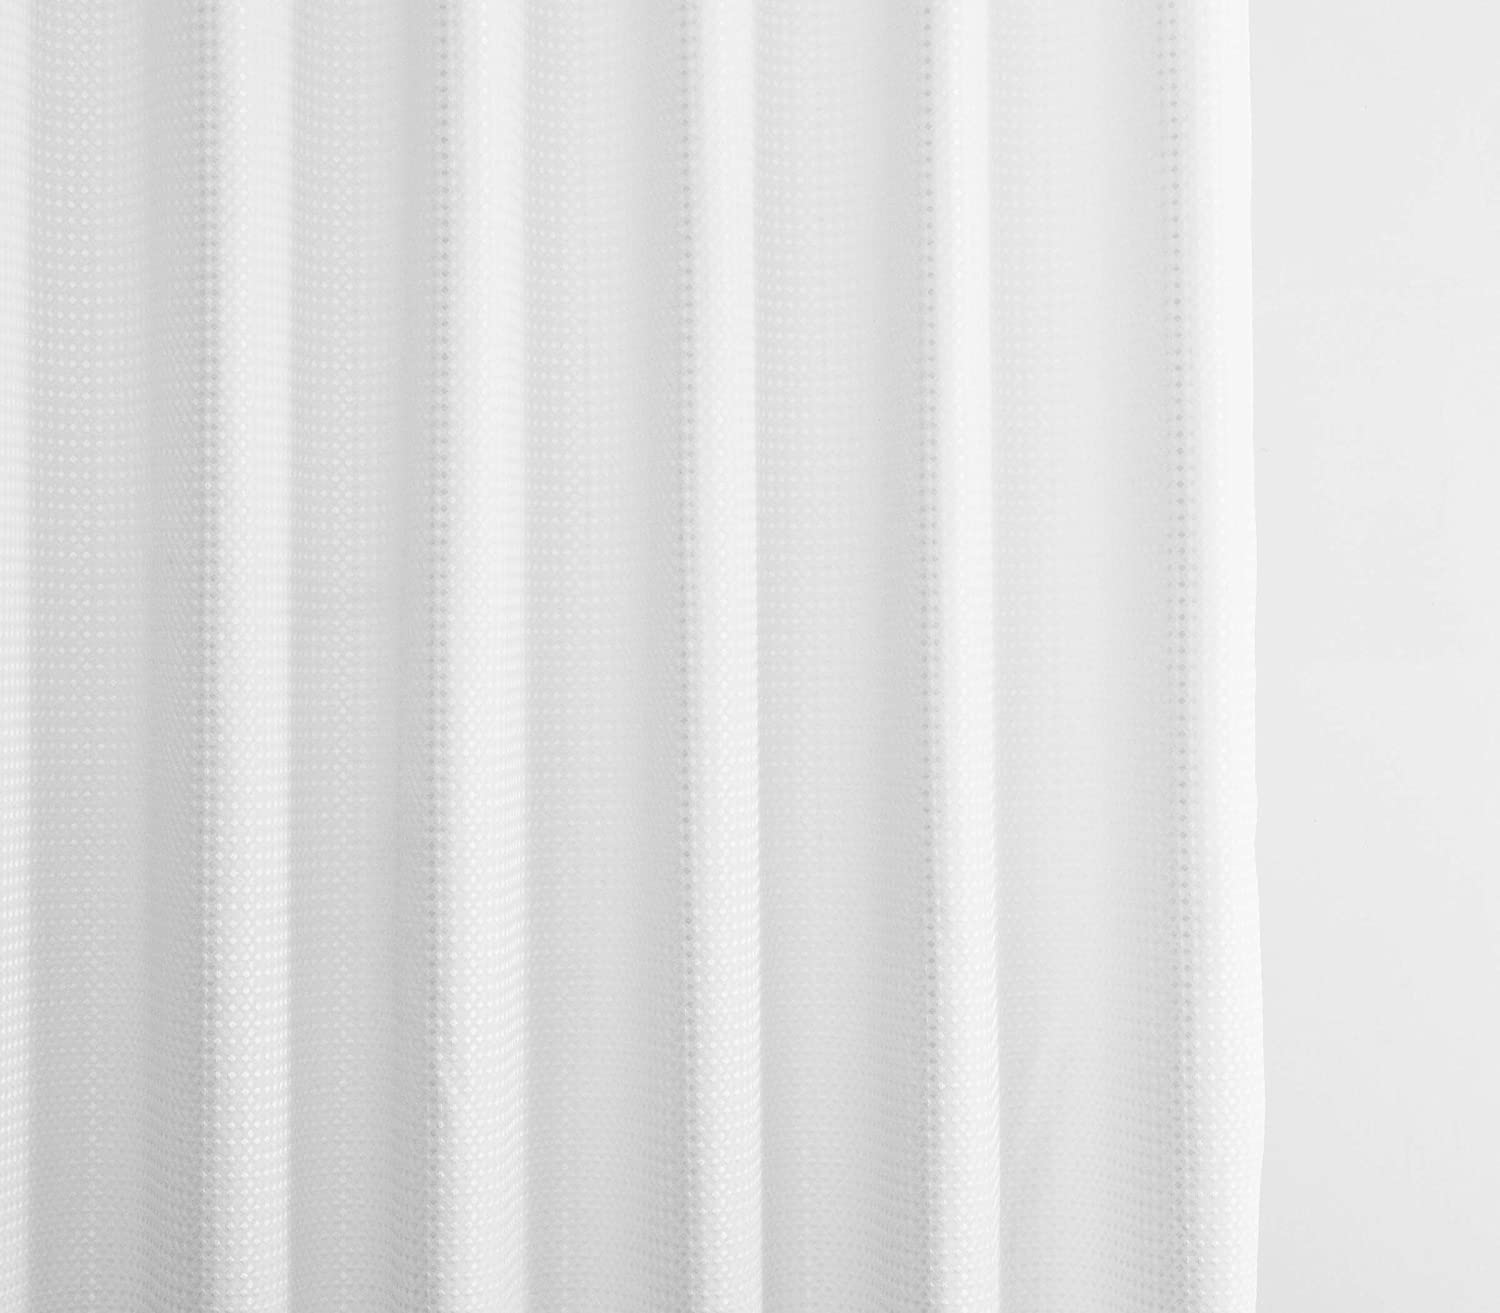 Waffle//White Classic Soft Polyester Great for Showers /& Bathtubs |Large Size Elegant White 72 x 72 White 72 x 72 Ameritex Waffle Weave Shower Curtain Fabric Decorative Bathroom Accessories Waffle//White